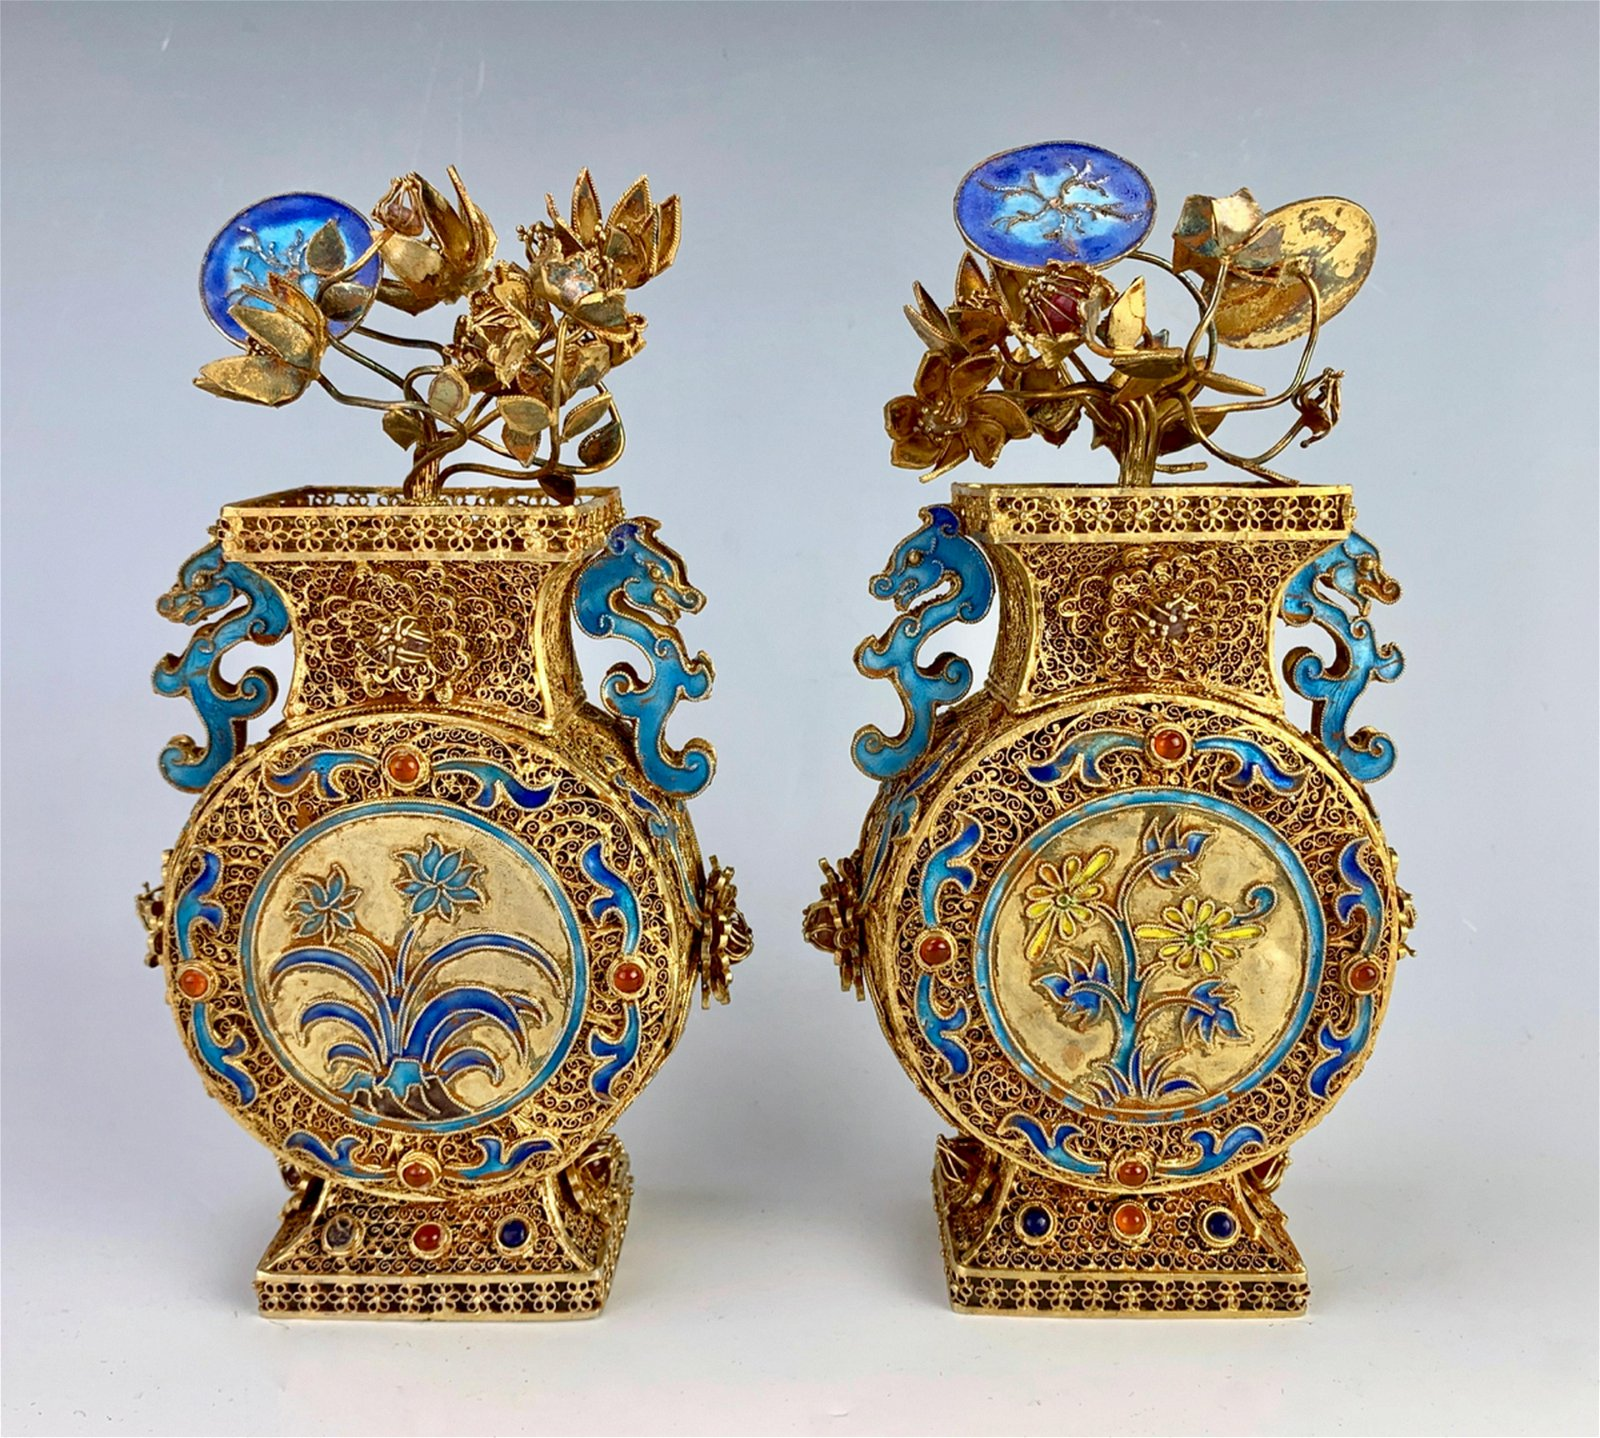 Pair of Chinese Silver & Enamel Miniature Urns